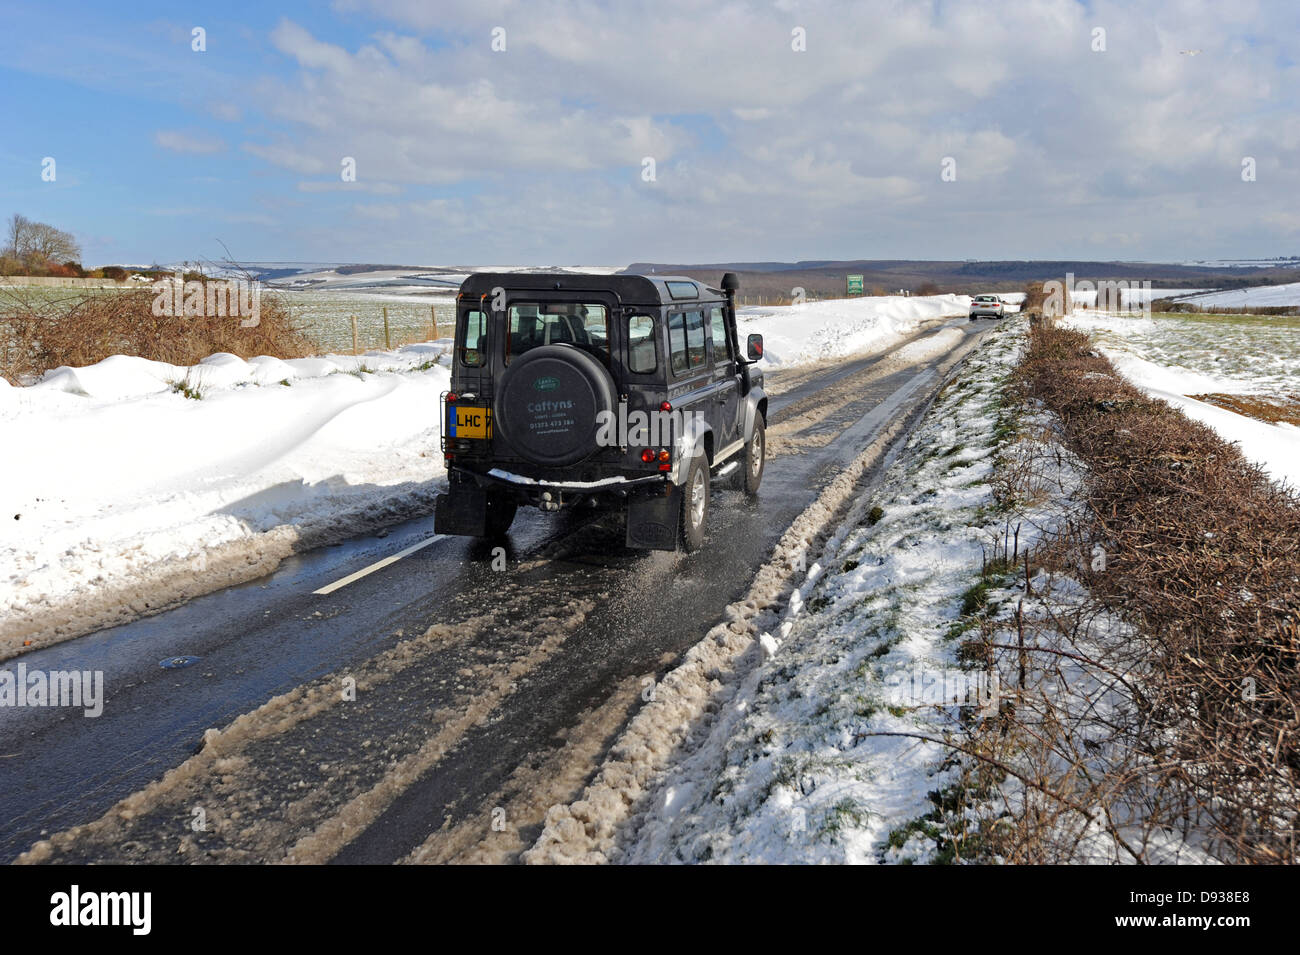 A Land Rover drives on the road after a heavy snowfall on the Sussex Downs - Stock Image